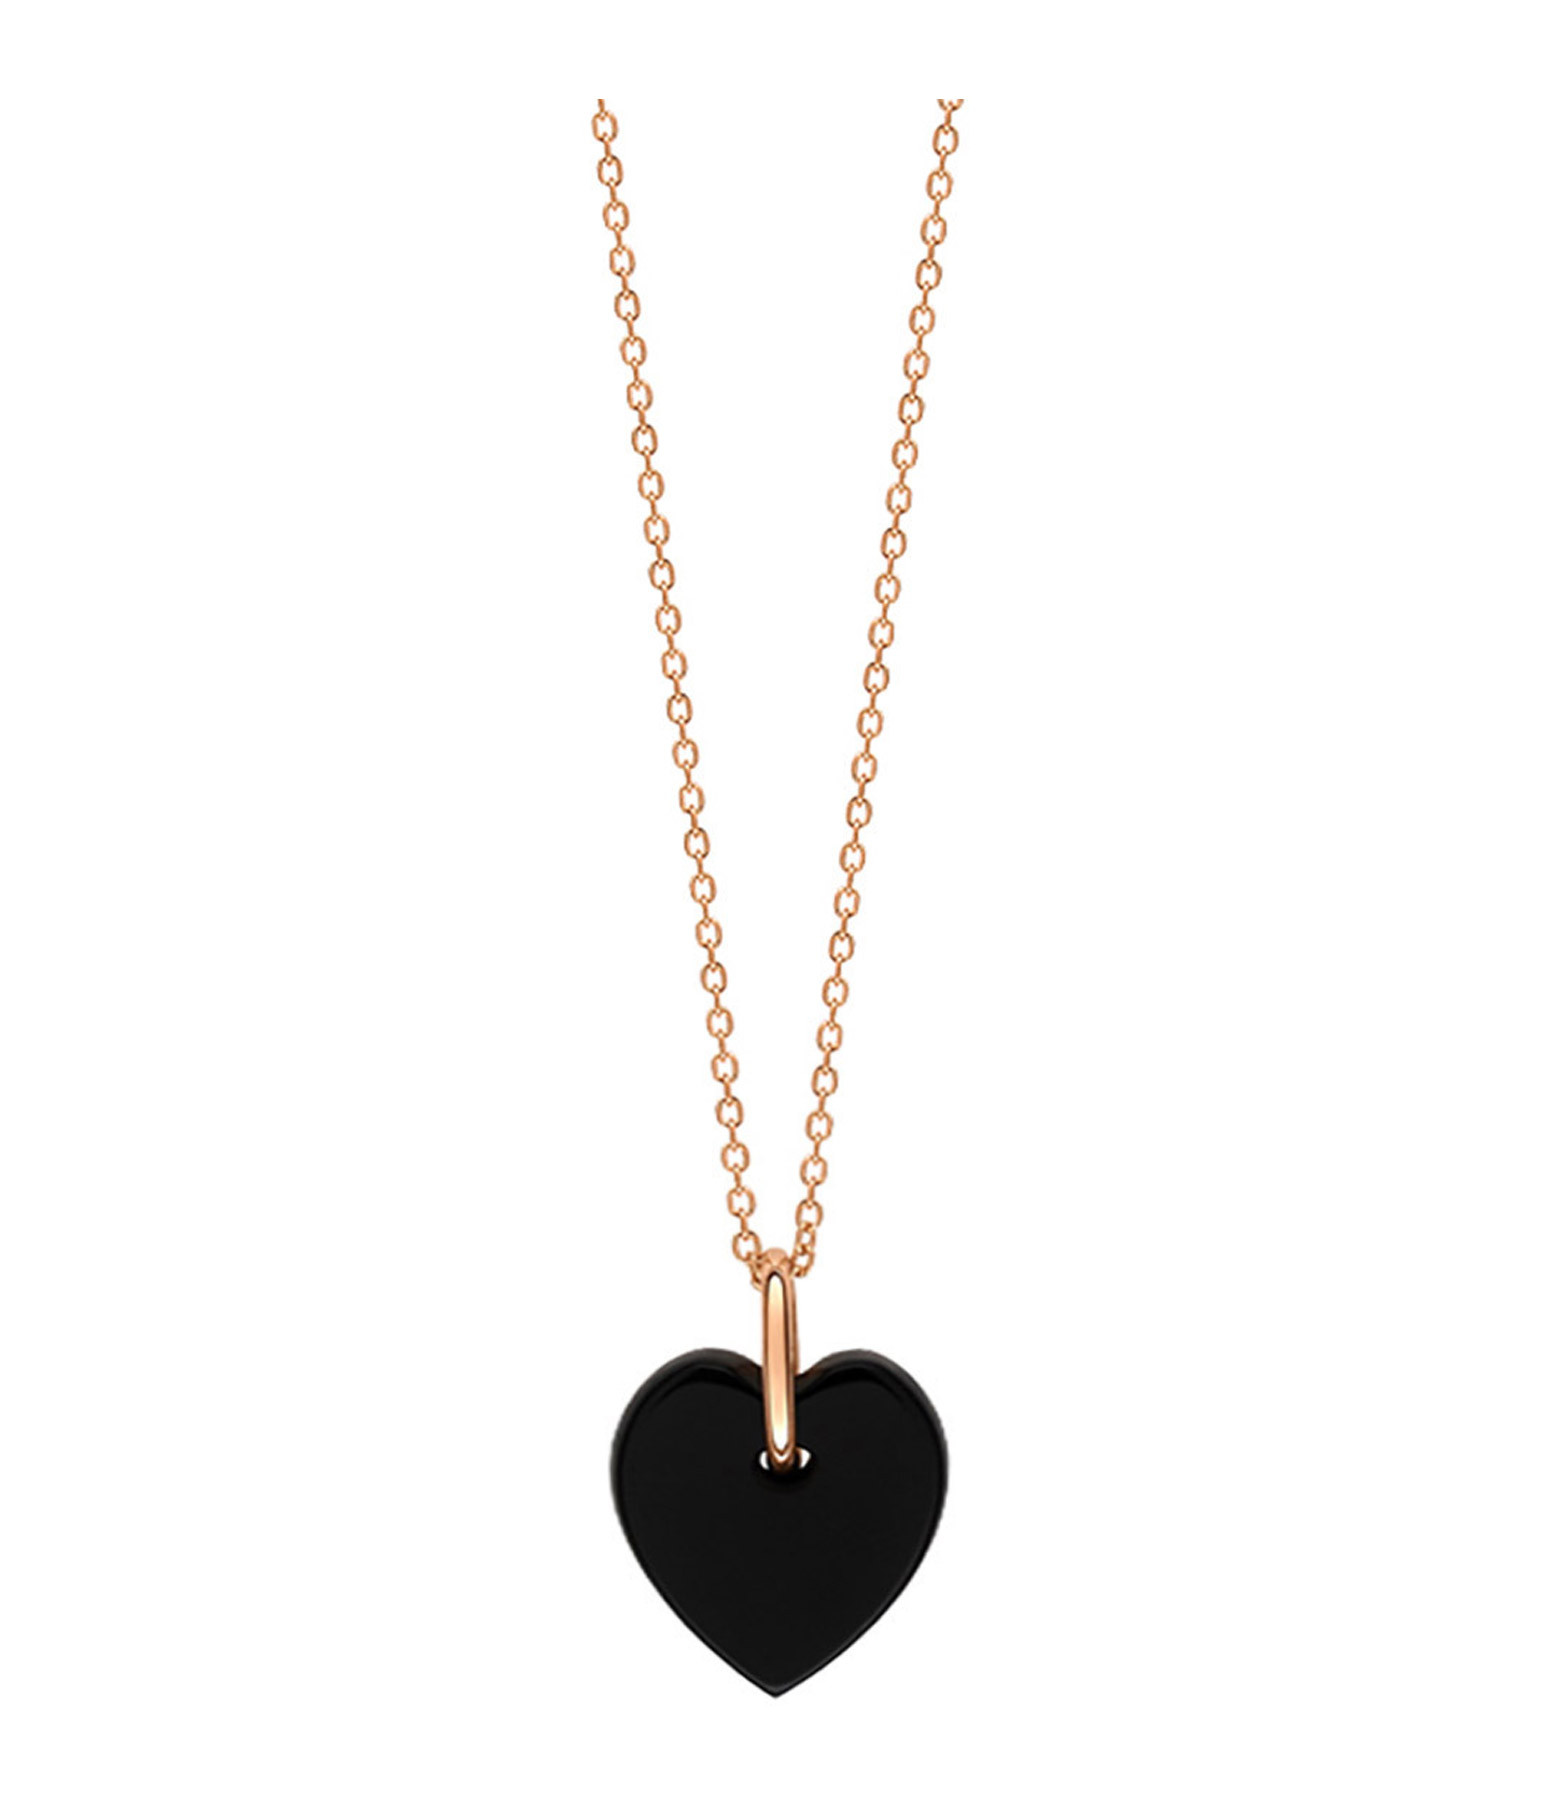 GINETTE_NY - Collier Angèle Mini Coeur Onyx